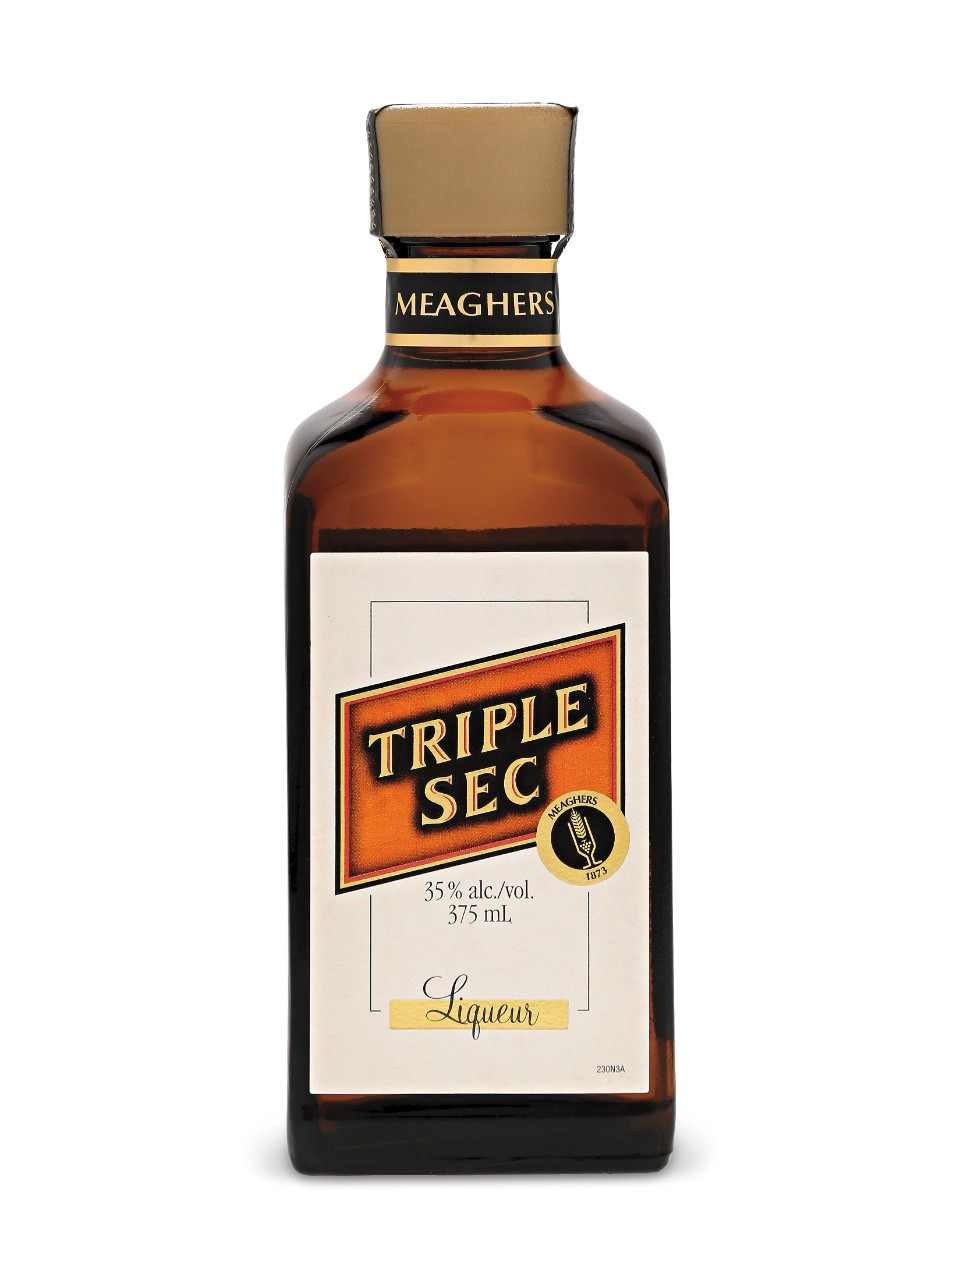 Meaghers Triple Sec from LCBO